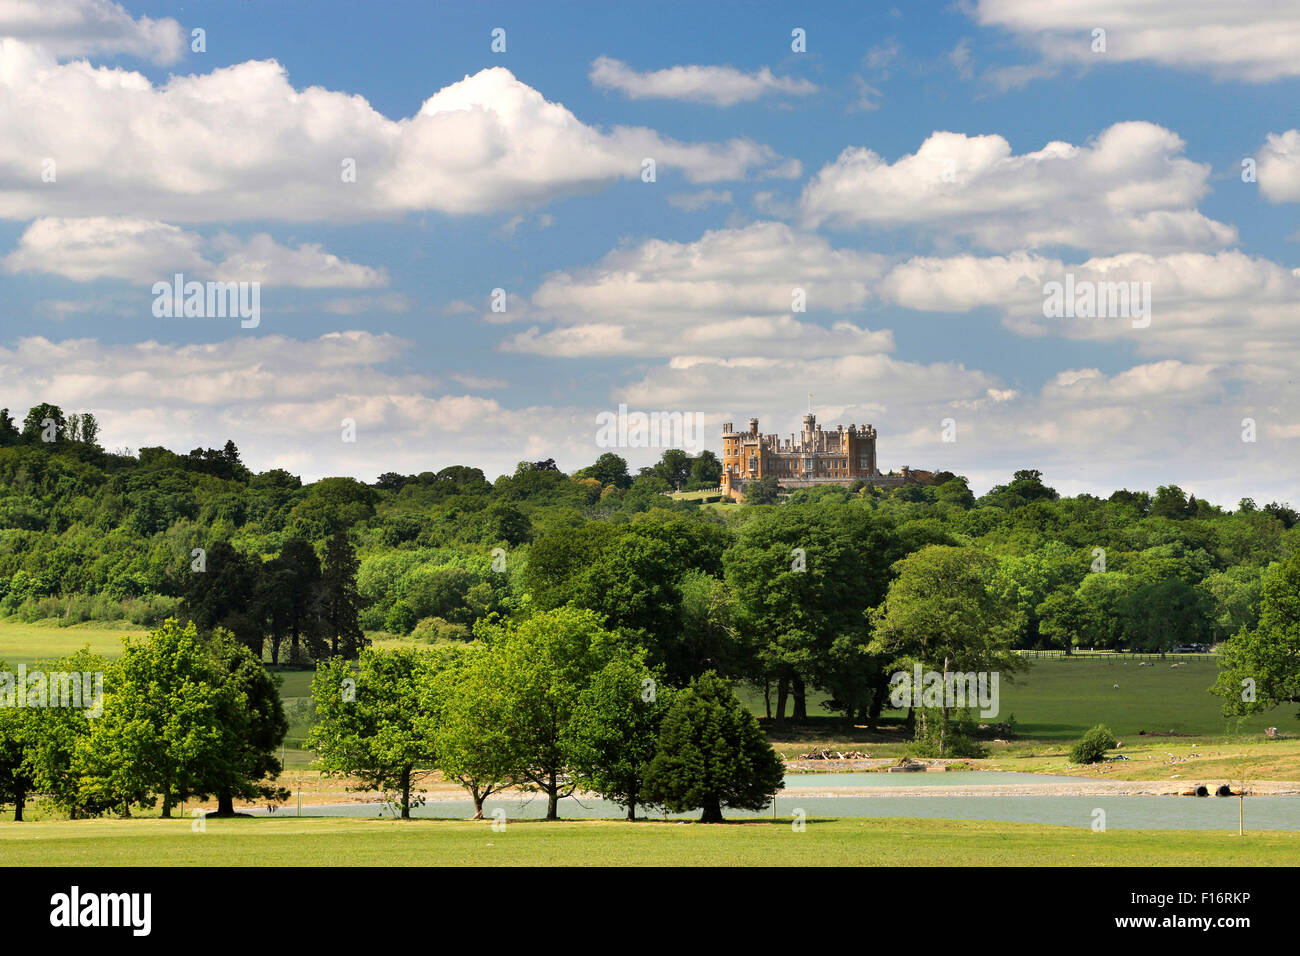 Belvoir Castle in the Vale of Belvoir, Leicestershire, England, UK - Stock Image